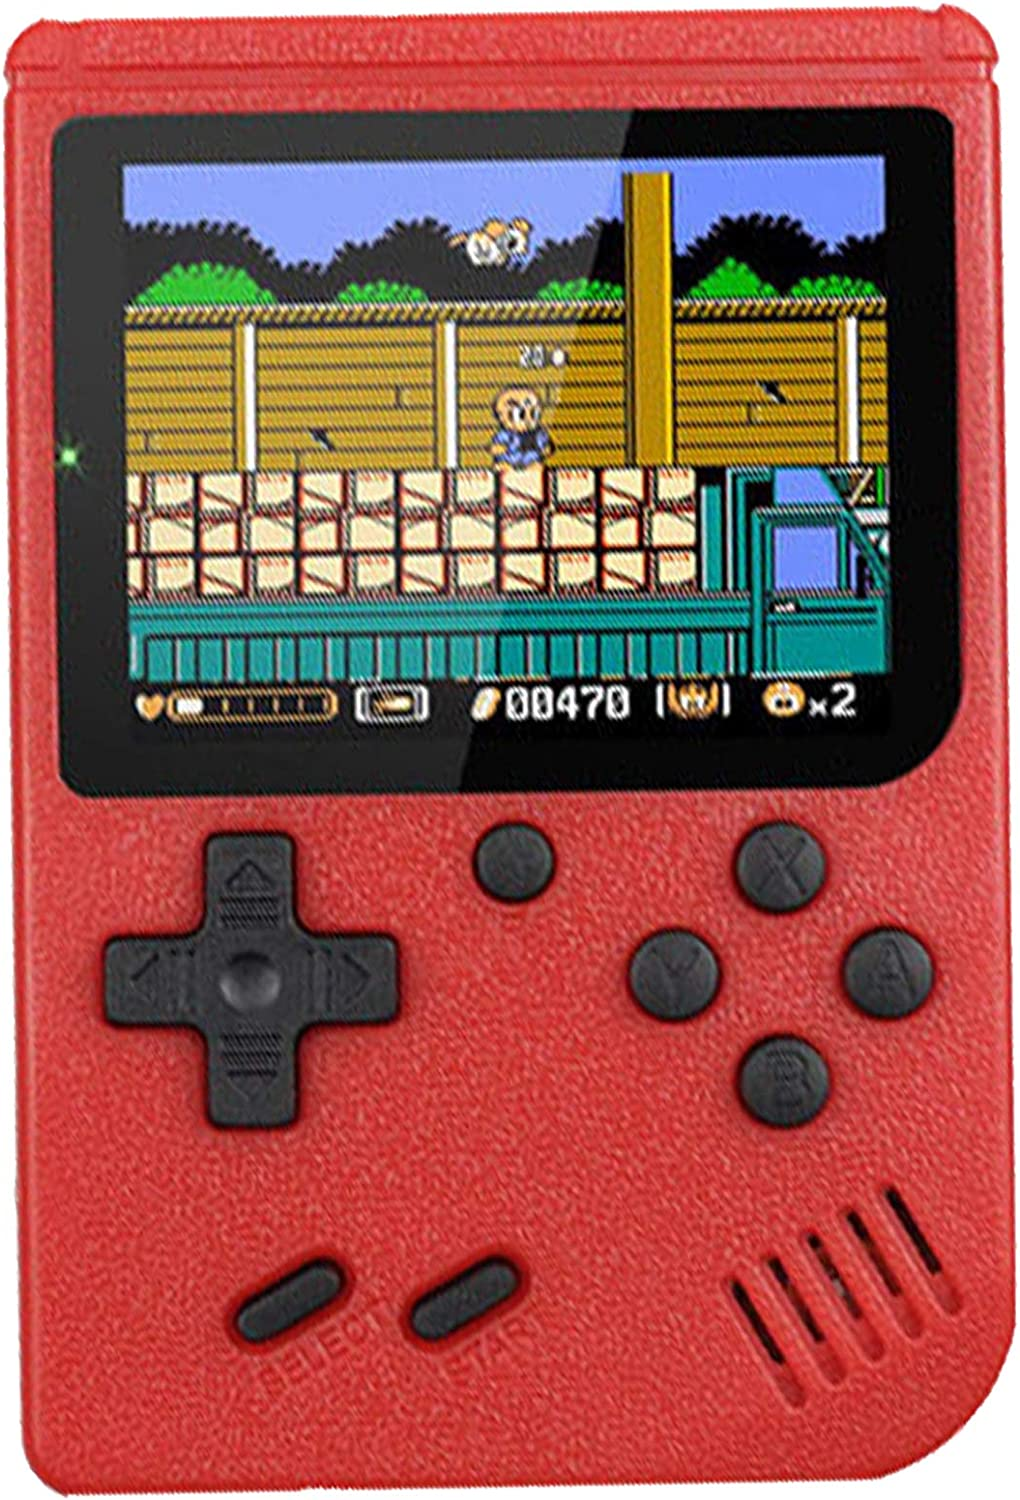 RFiotasy Retro Game Machine Handheld Game Console with 400 Classical FC Game ConsoleSupport for Connecting TV Gift Birthday for Kids and Adult (ZJ-red)